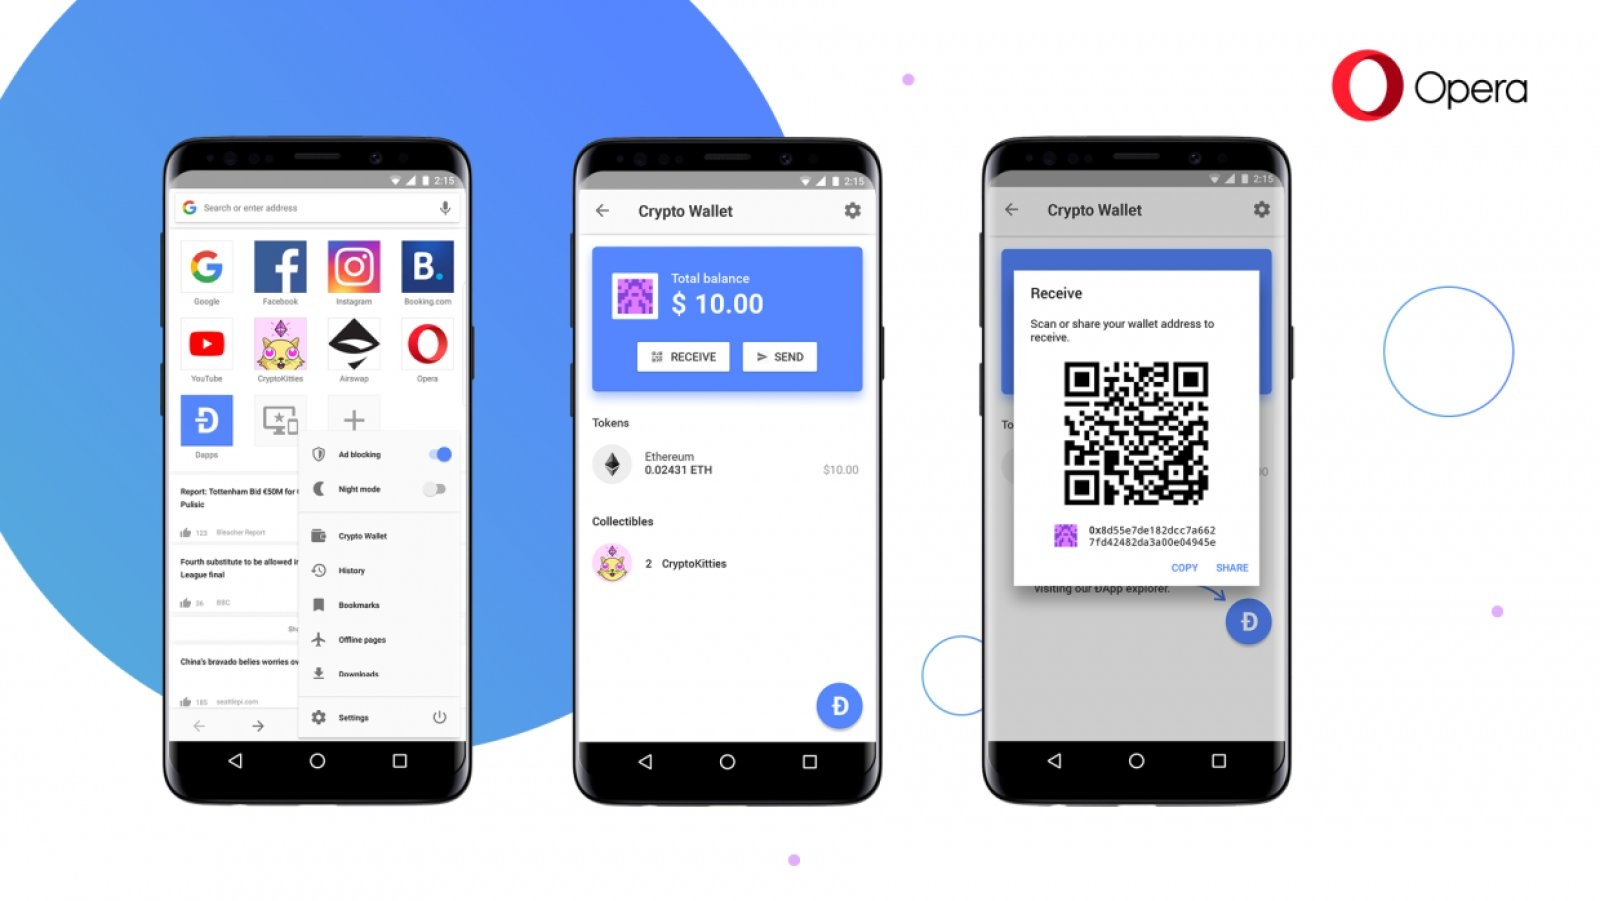 Opera | Android Crypto Wallet | Ethereum | Opera update | Ethereum Updates